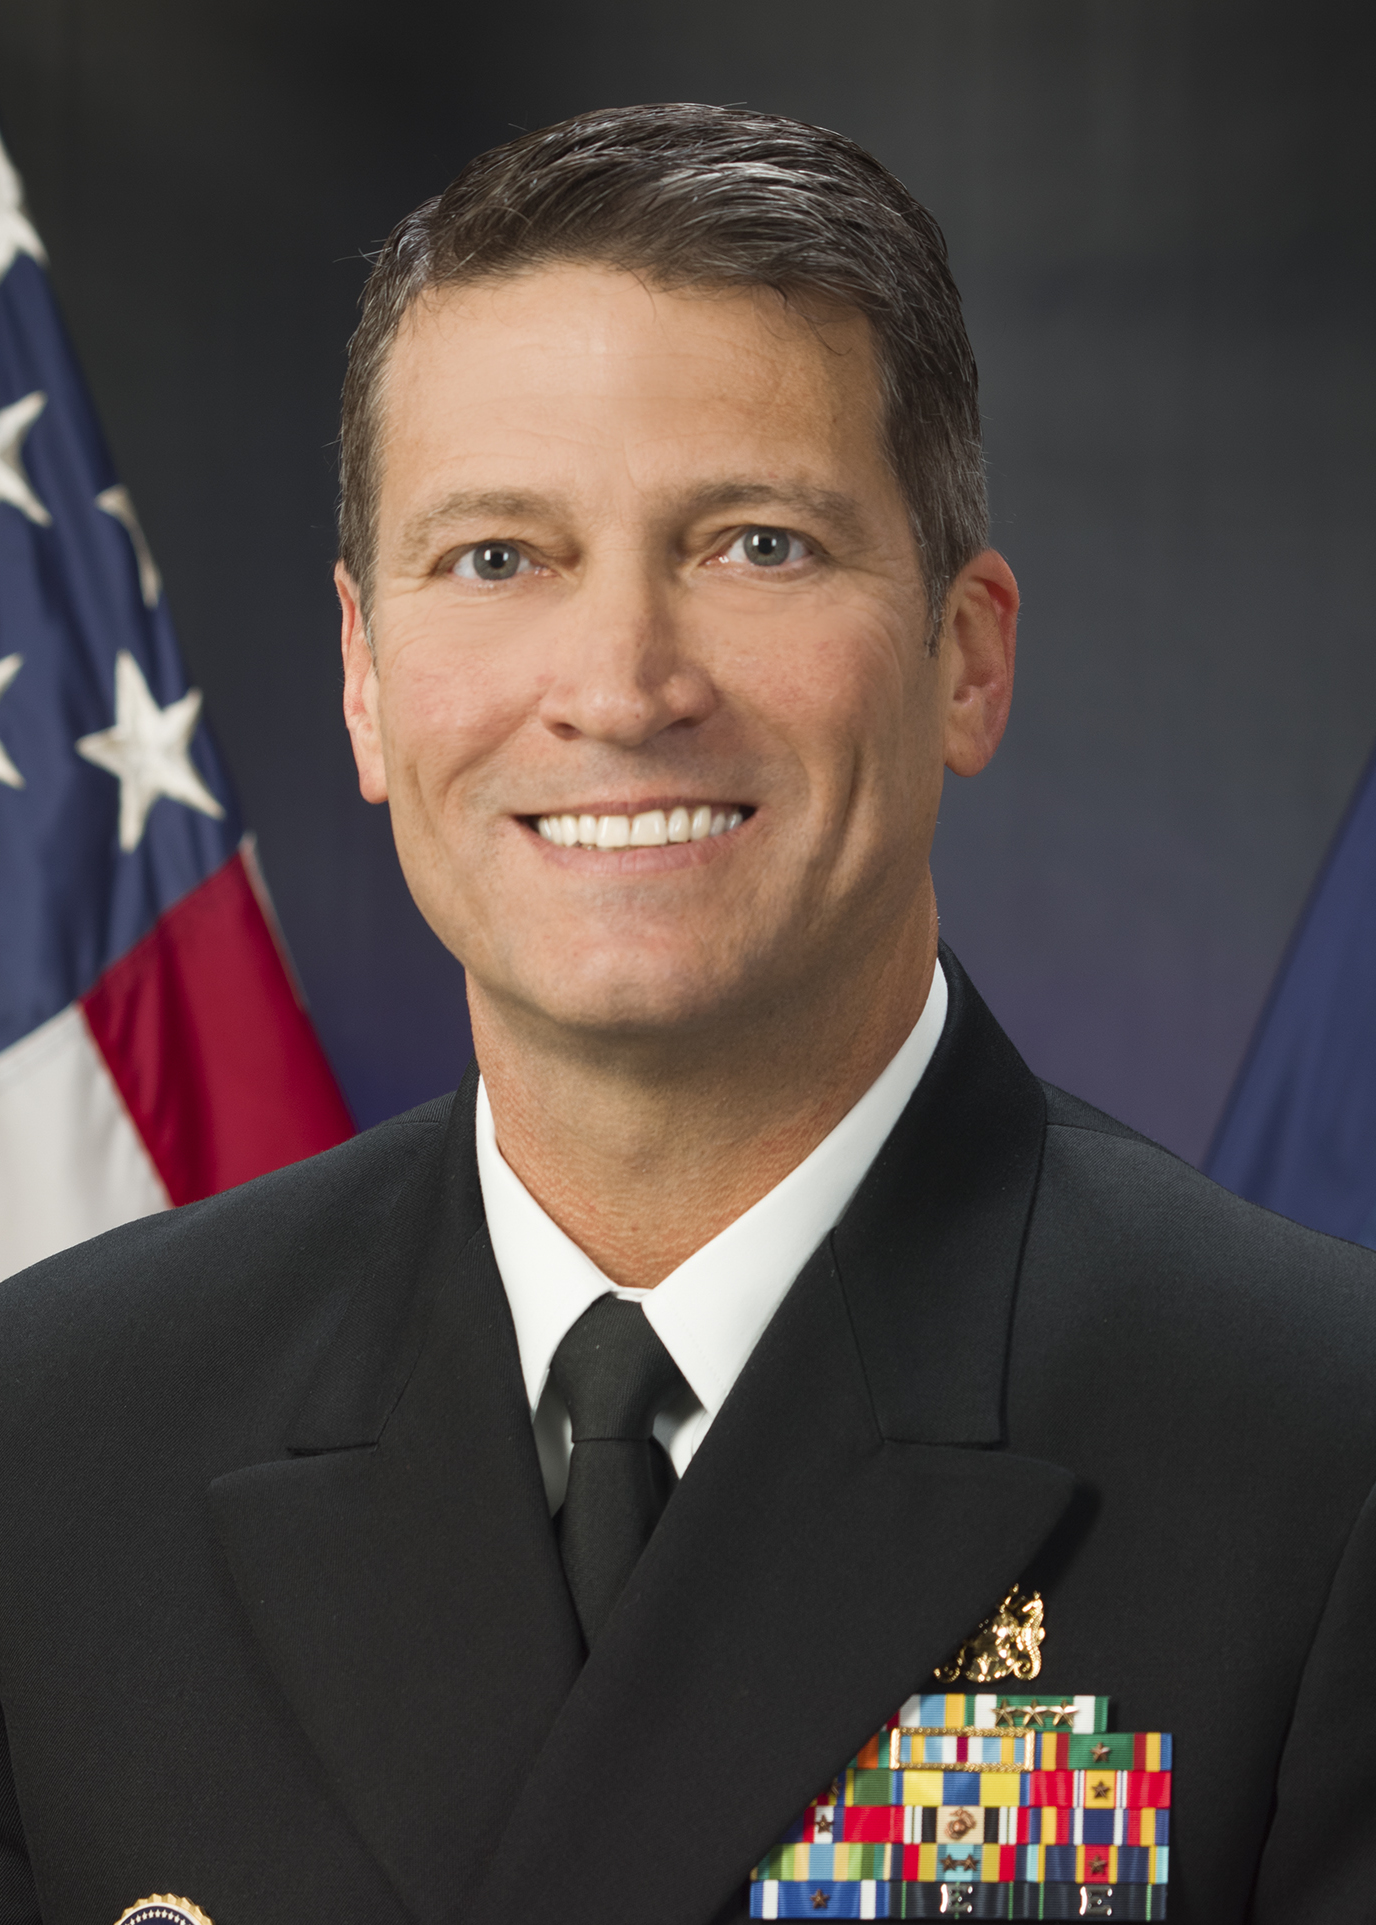 Jackson, White House doctor and Groton sub base grad, withdraws as VA nominee